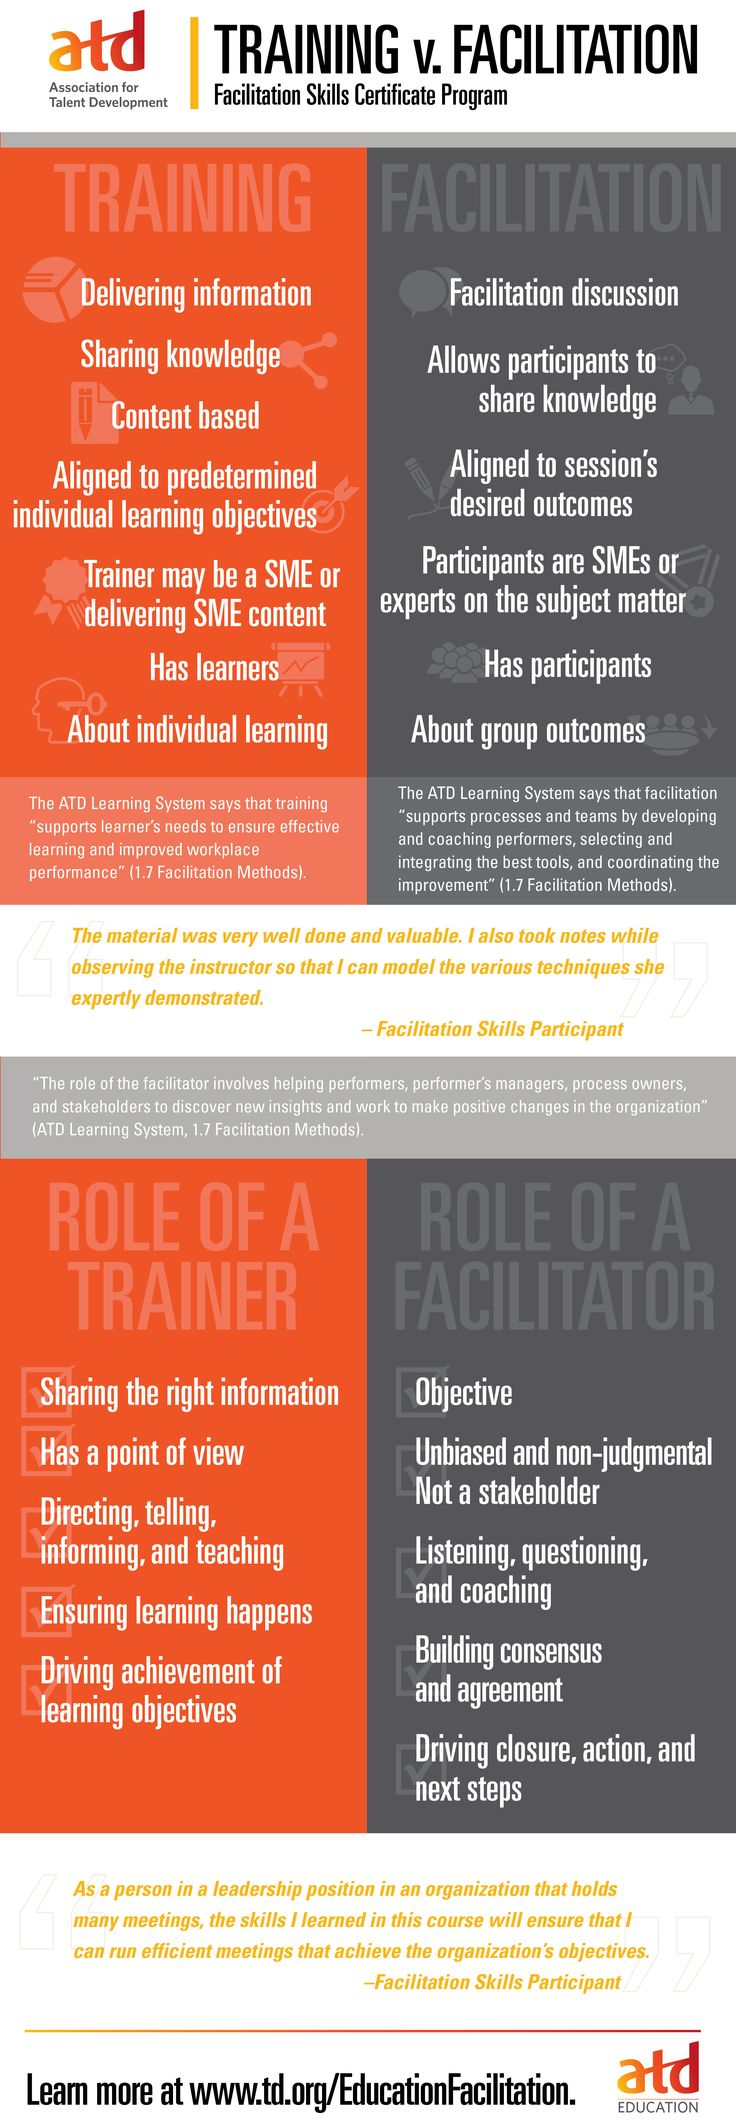 Do You Know the Difference Between Training and Facilitation?